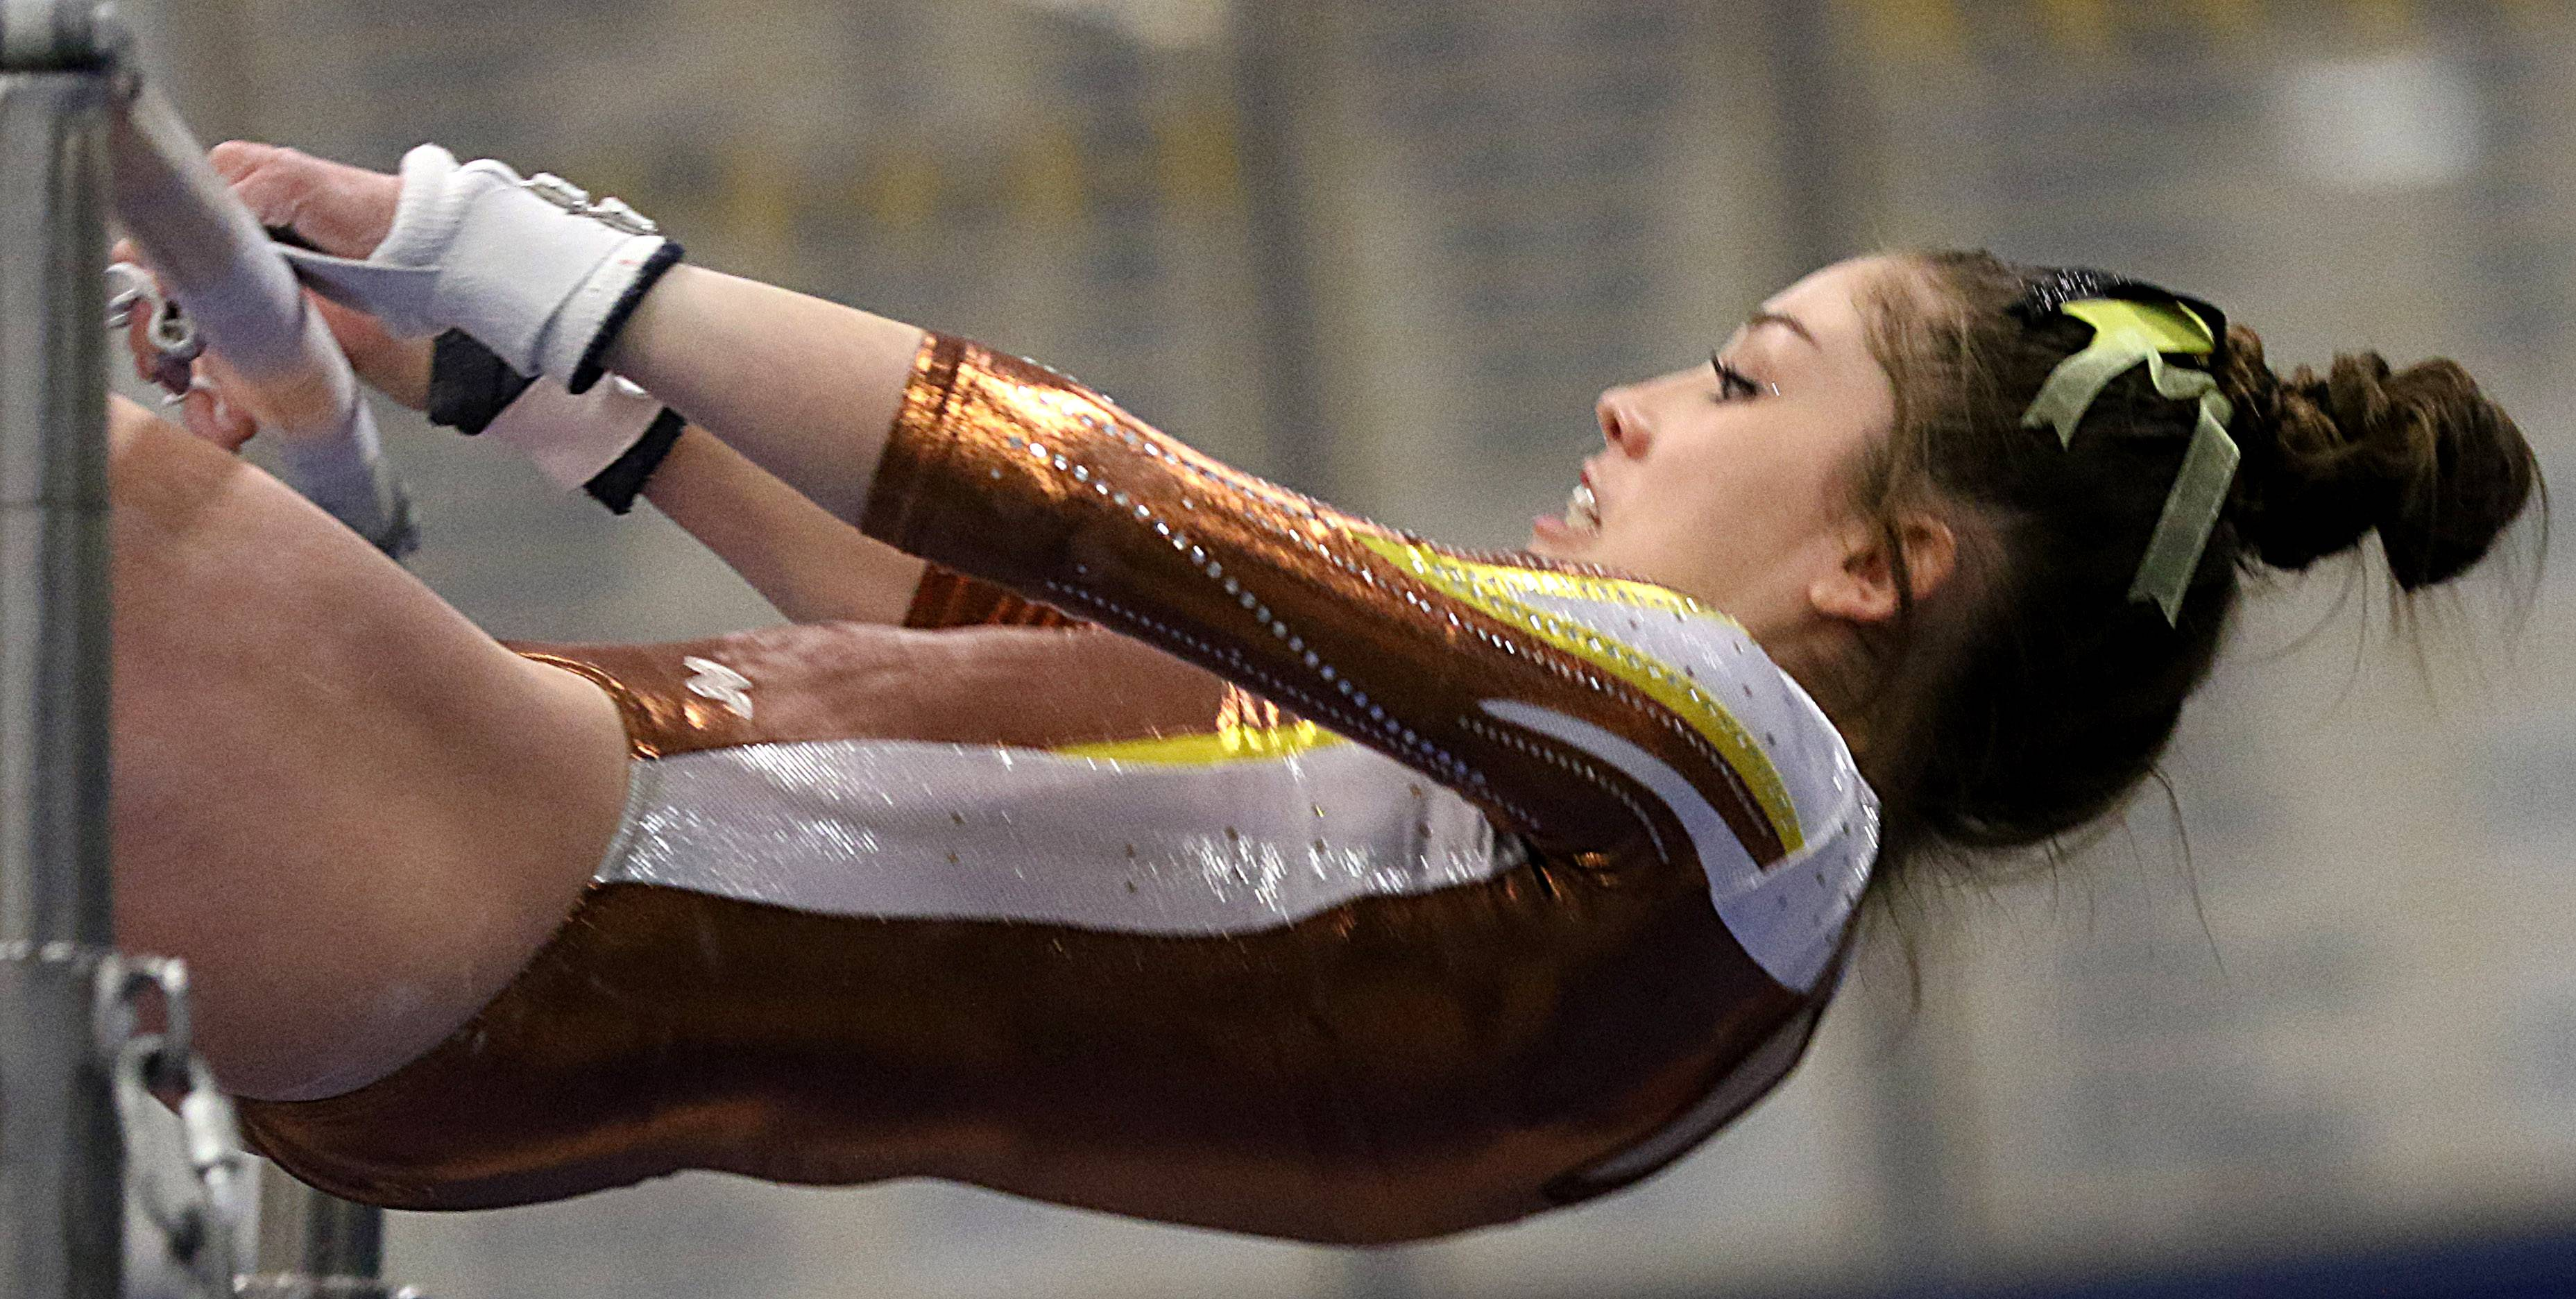 Carmel's Audrey Legarreta performs on the uneven parallel bars during regional gymnastics action at Wheeling on Monday evening.